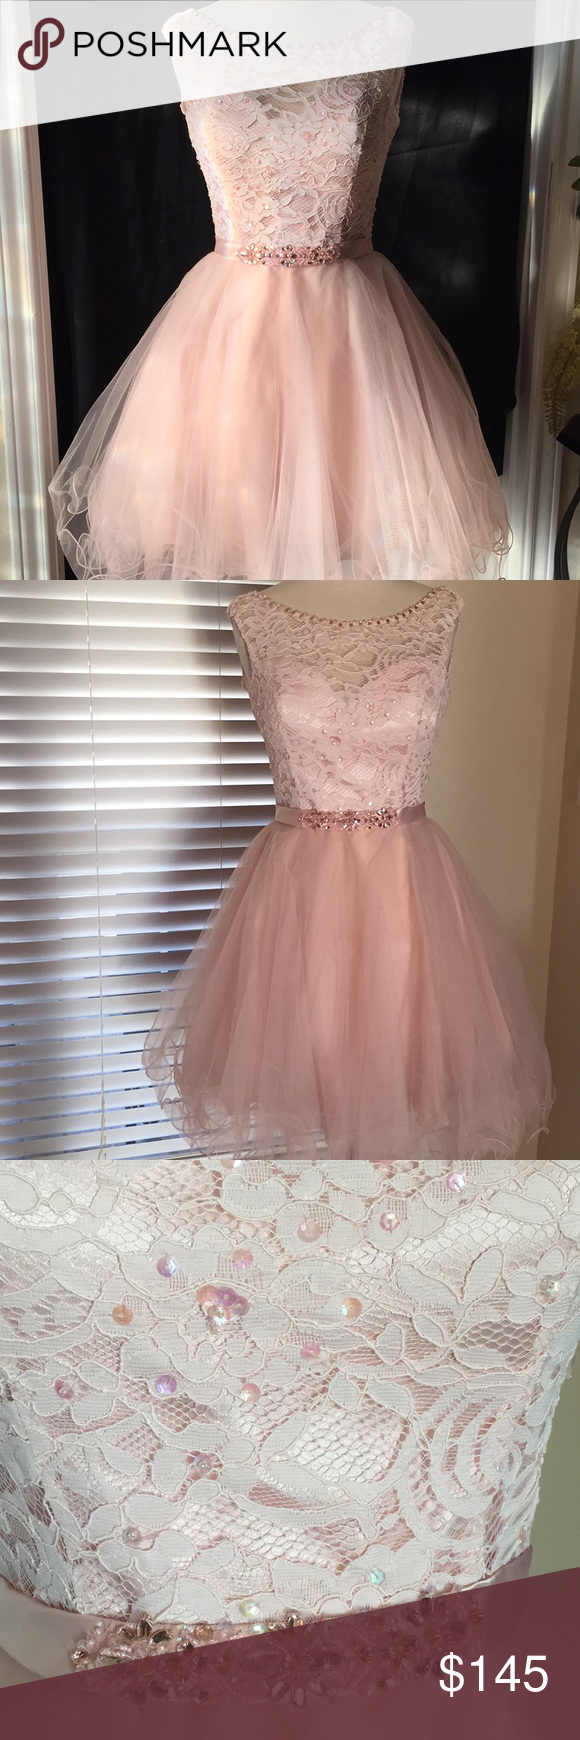 Morilee cocktail prom dress nwt